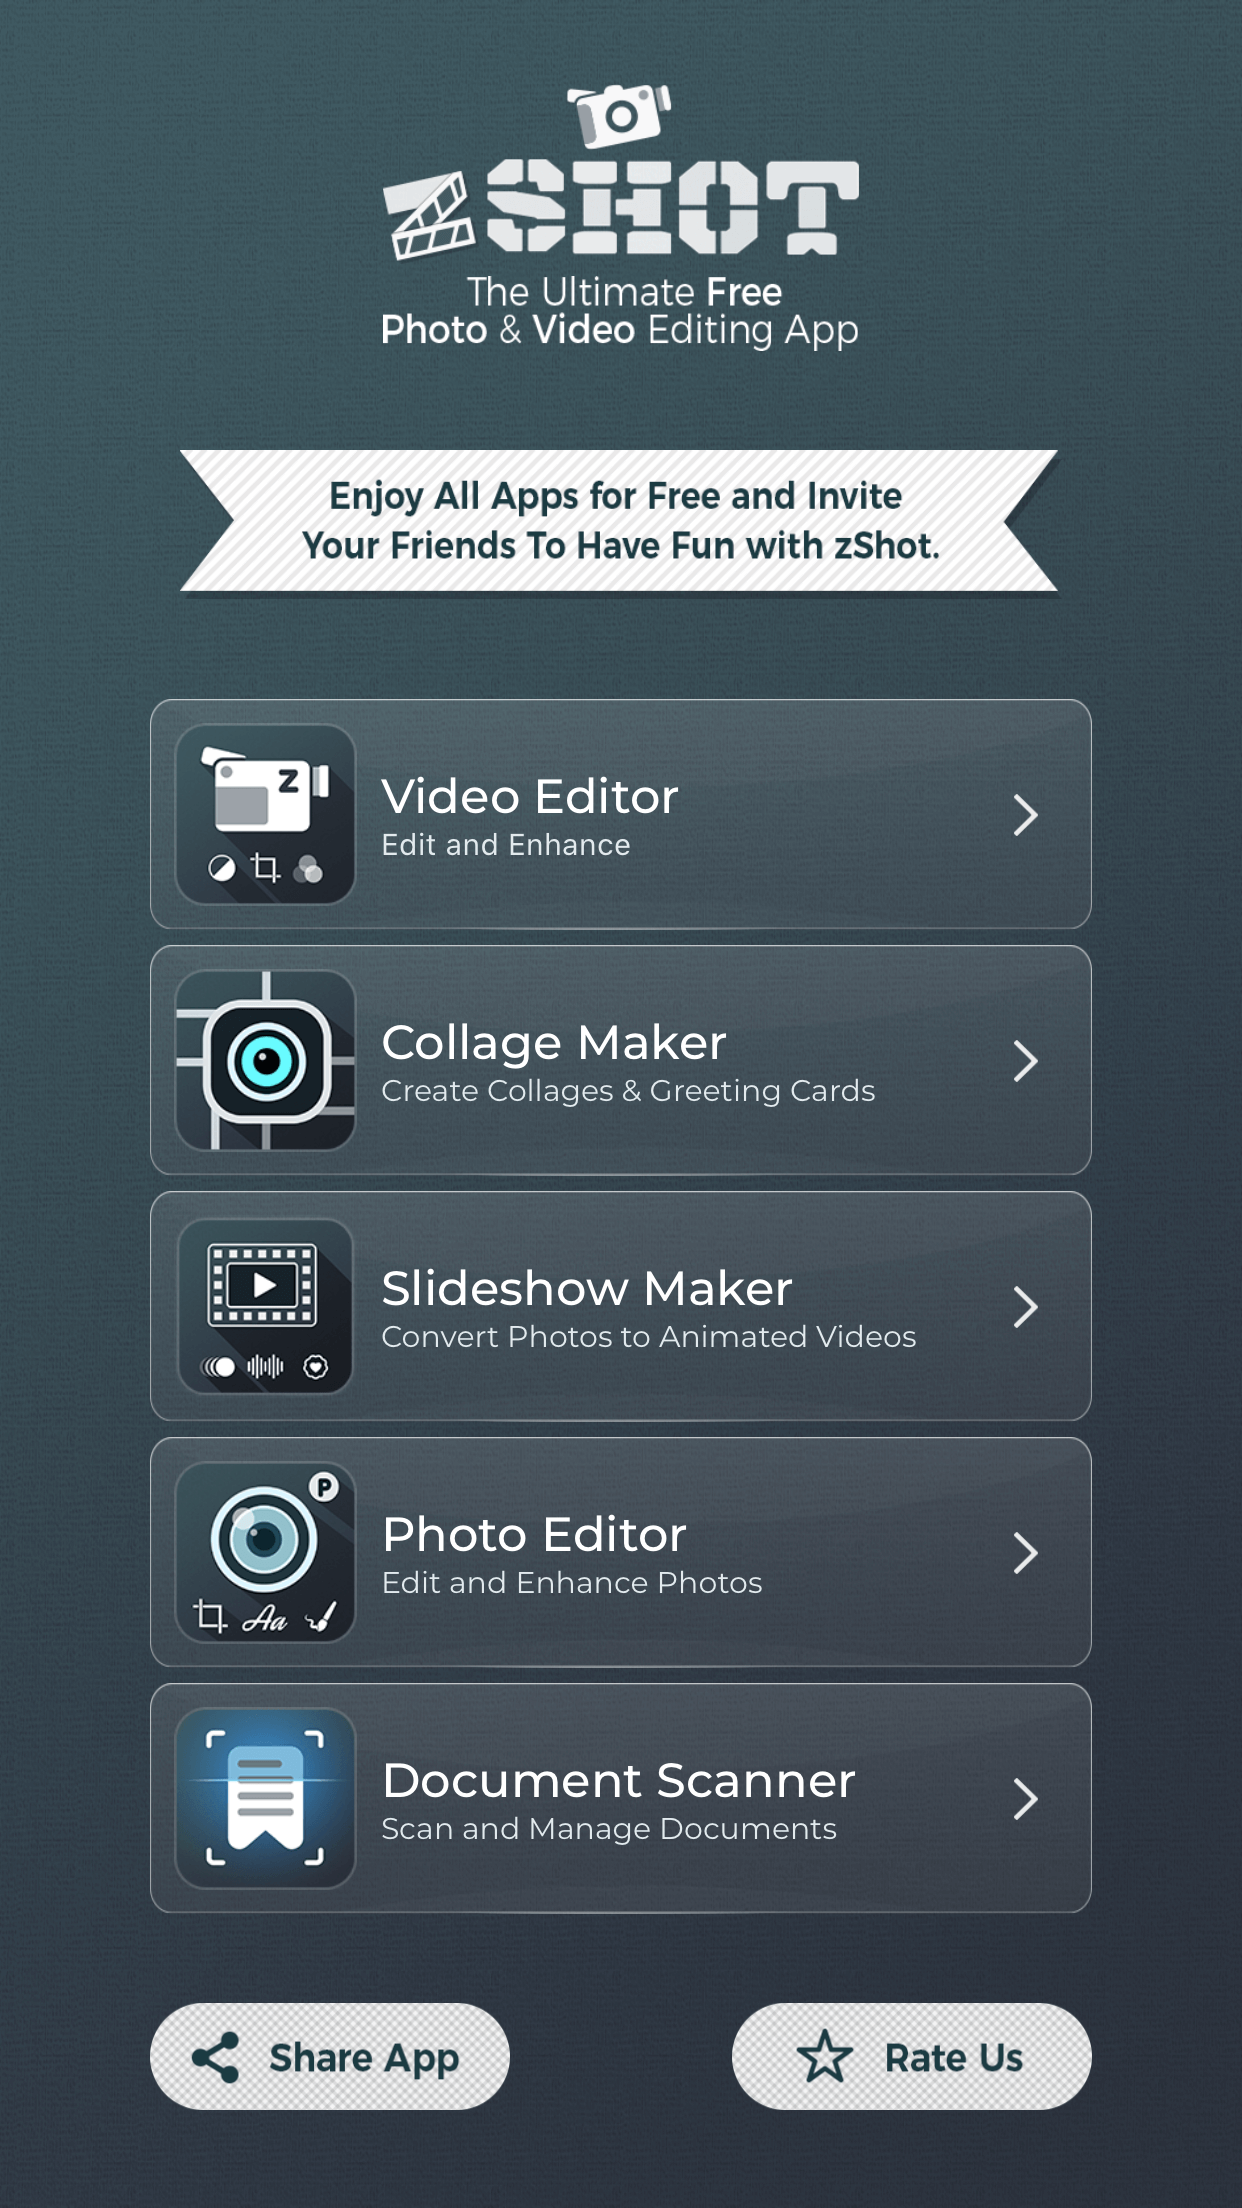 Five amazing apps of zshot.